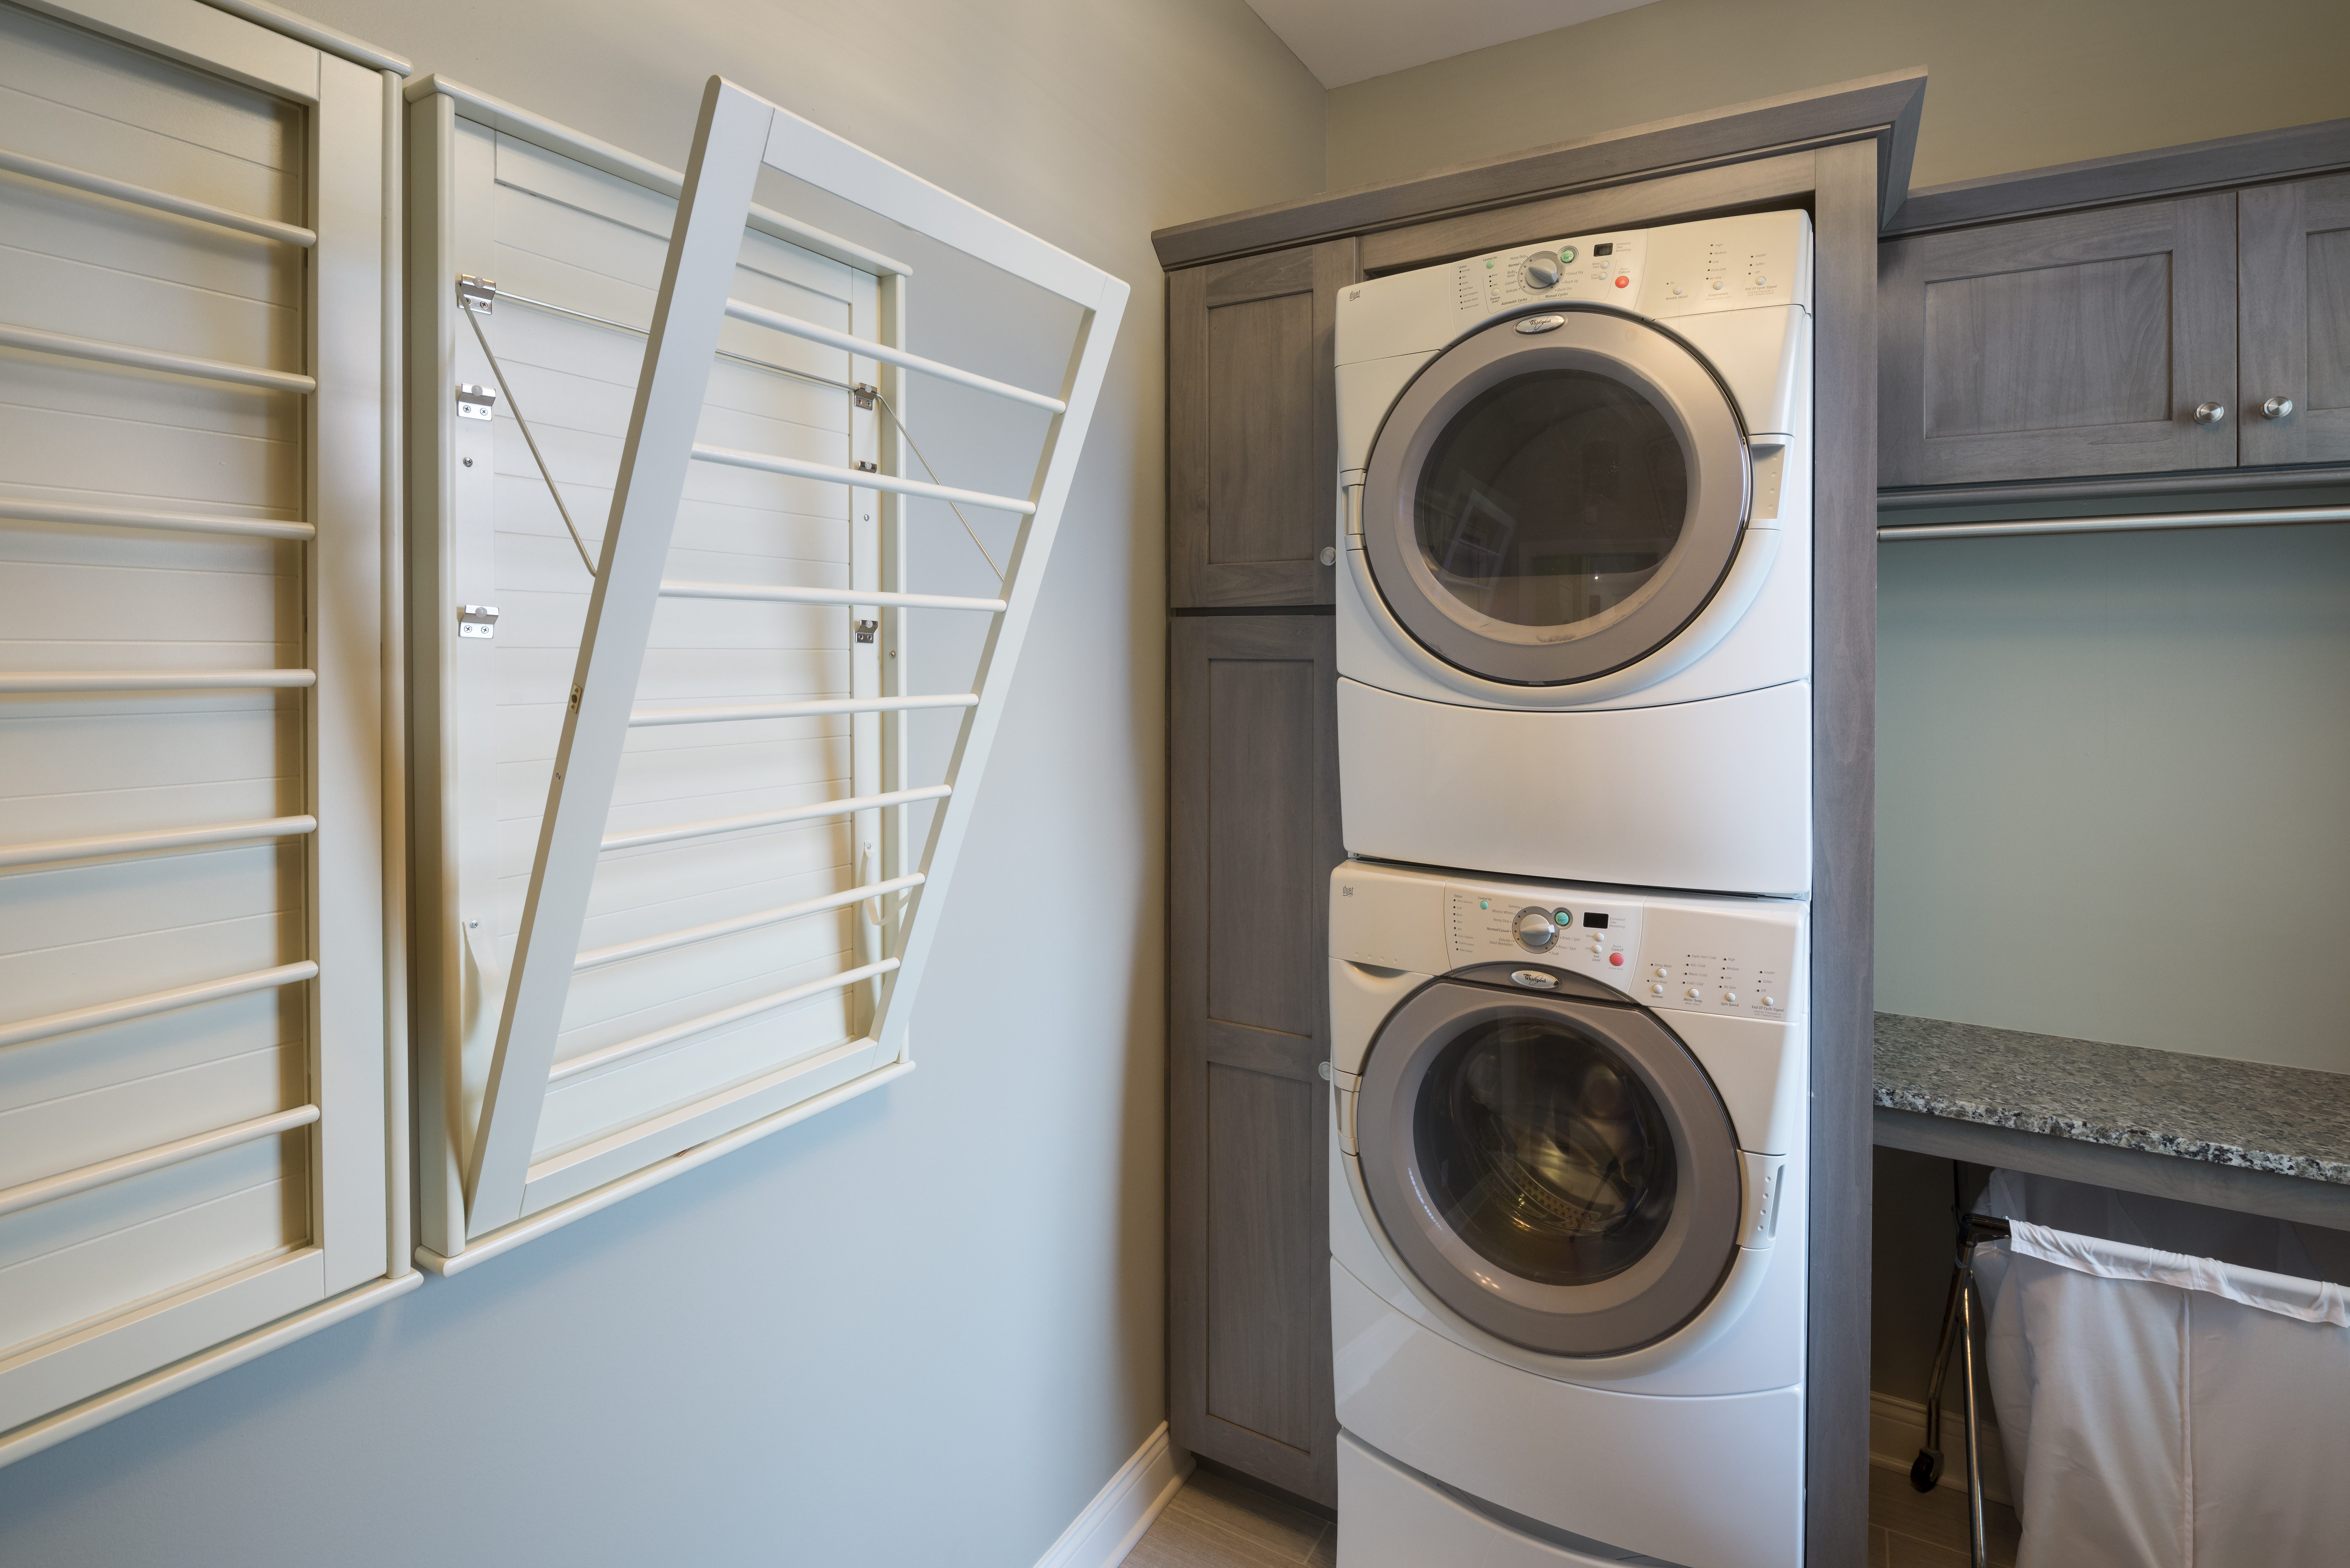 The homeowners a wanted a fold-down, wall-mounted laundry drying rack. What  a great way to maximize this space!